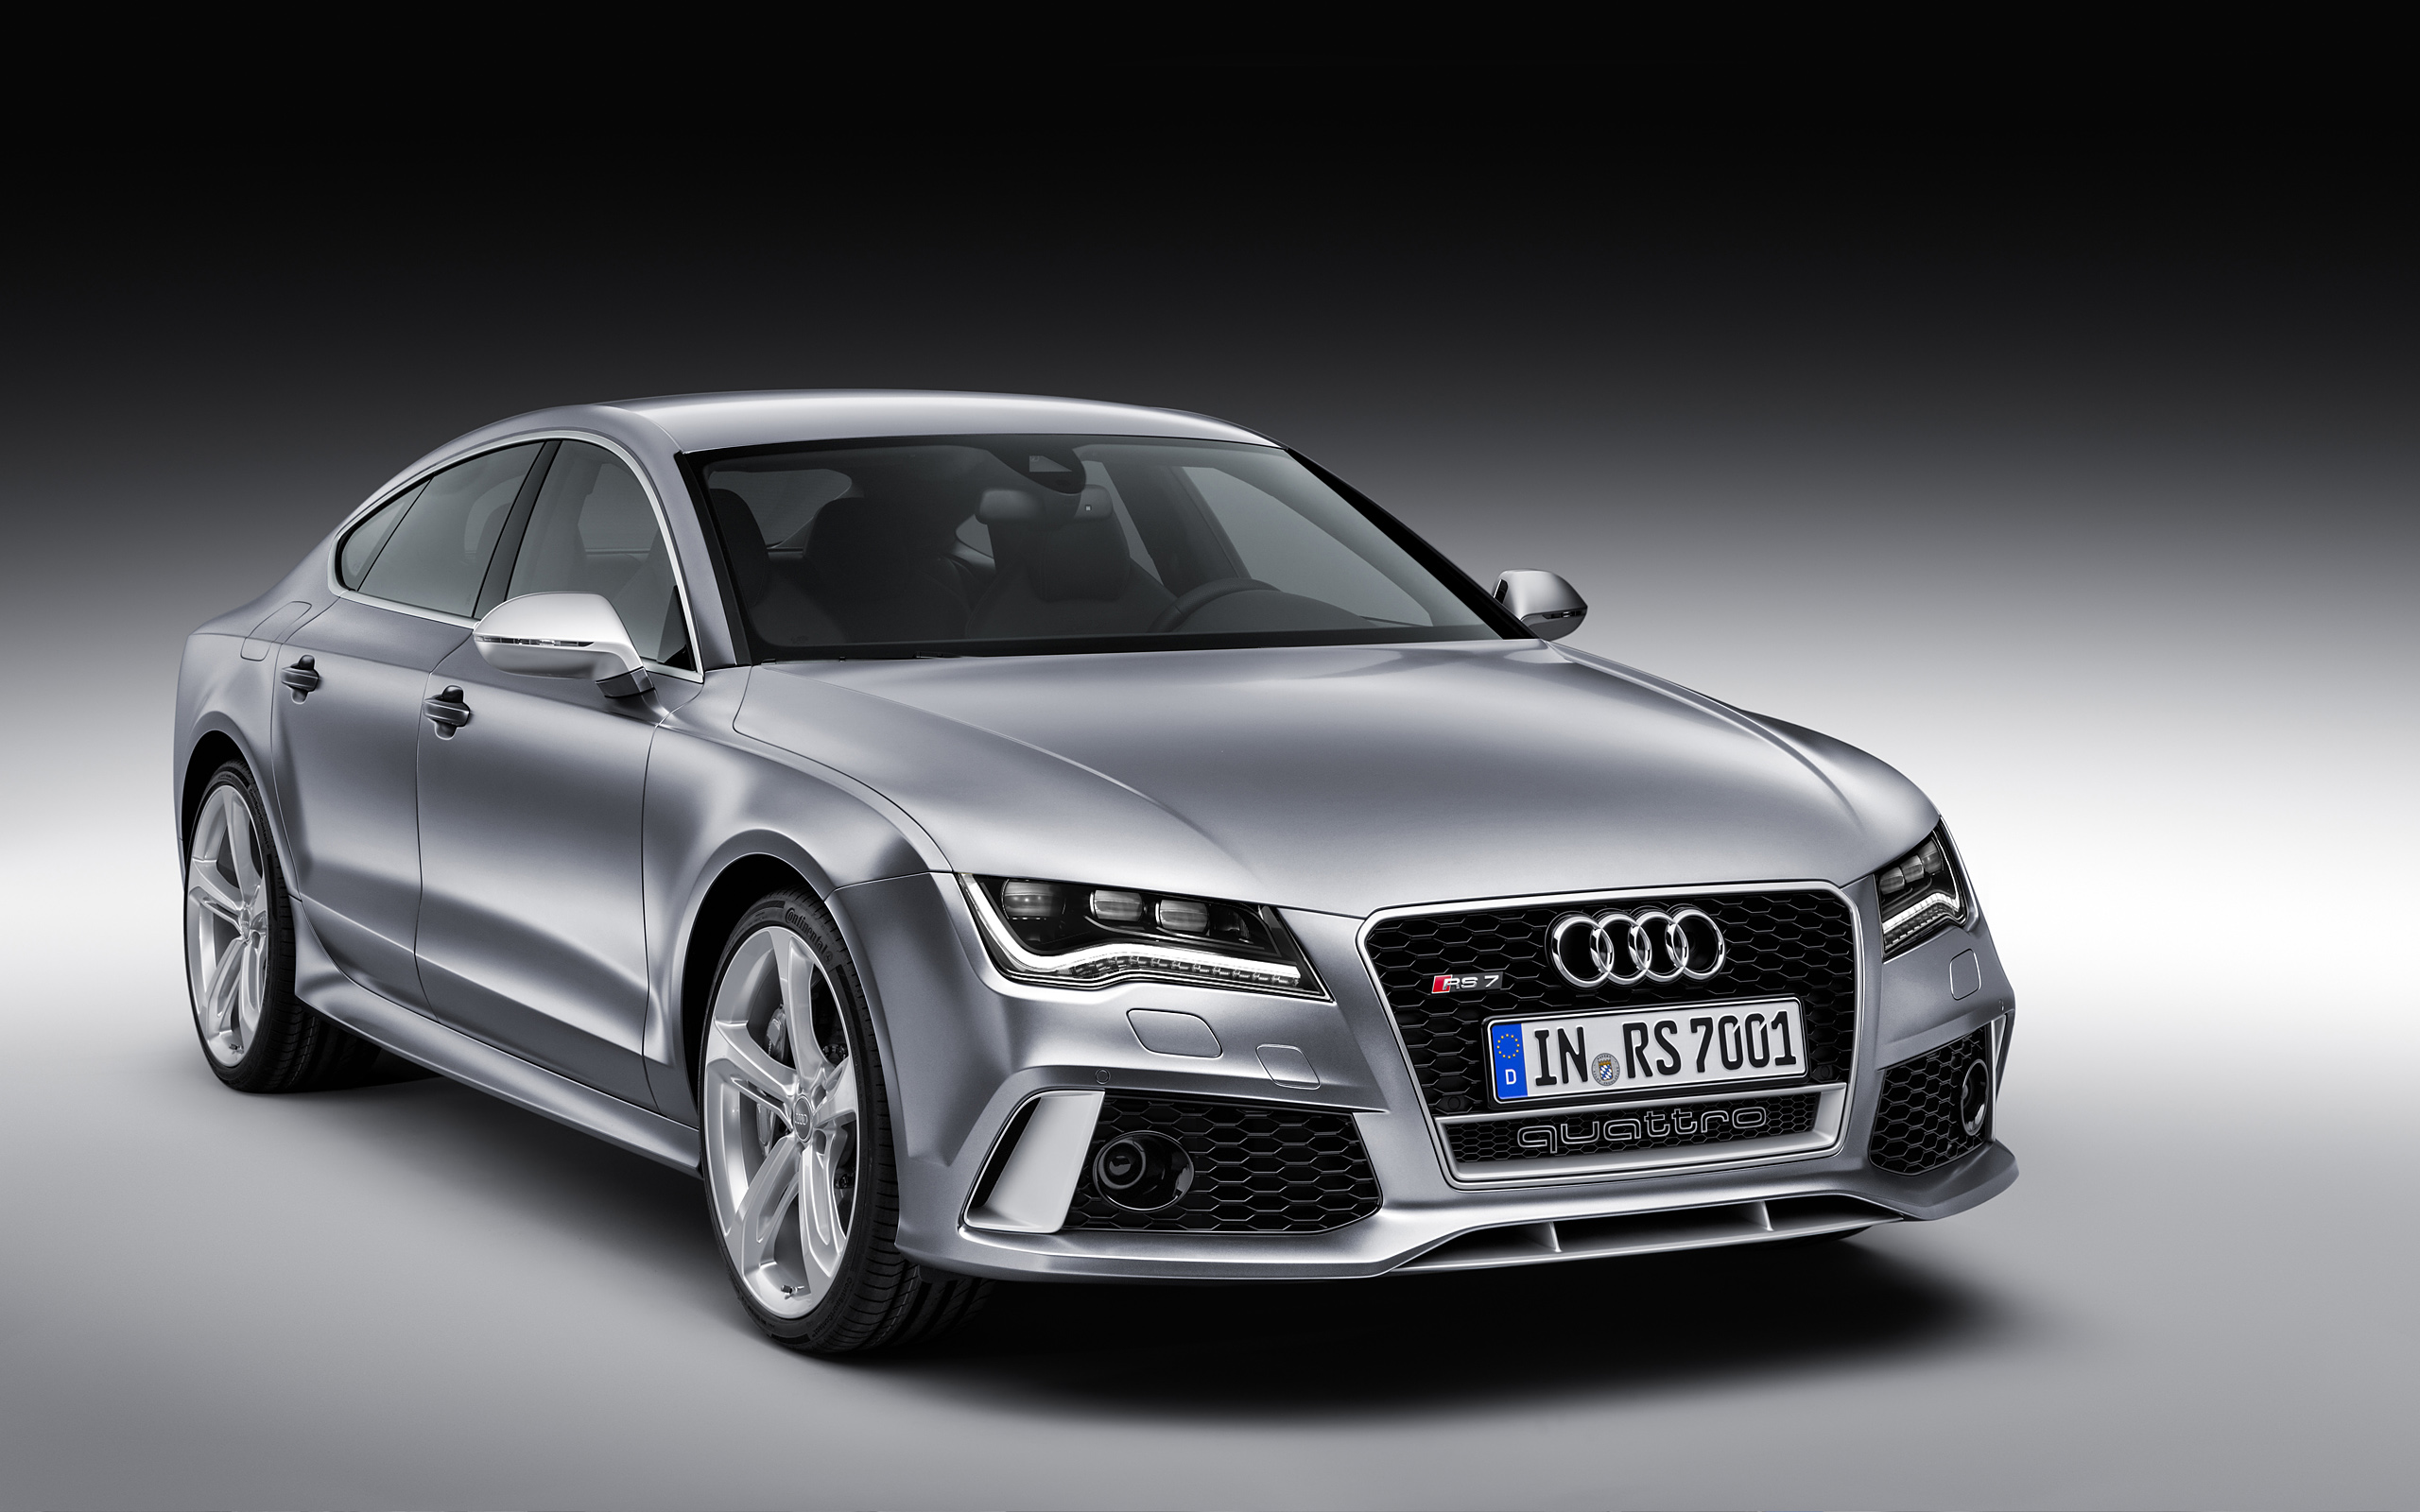 Audi 2014 Audi RS7  HD Wallpaper